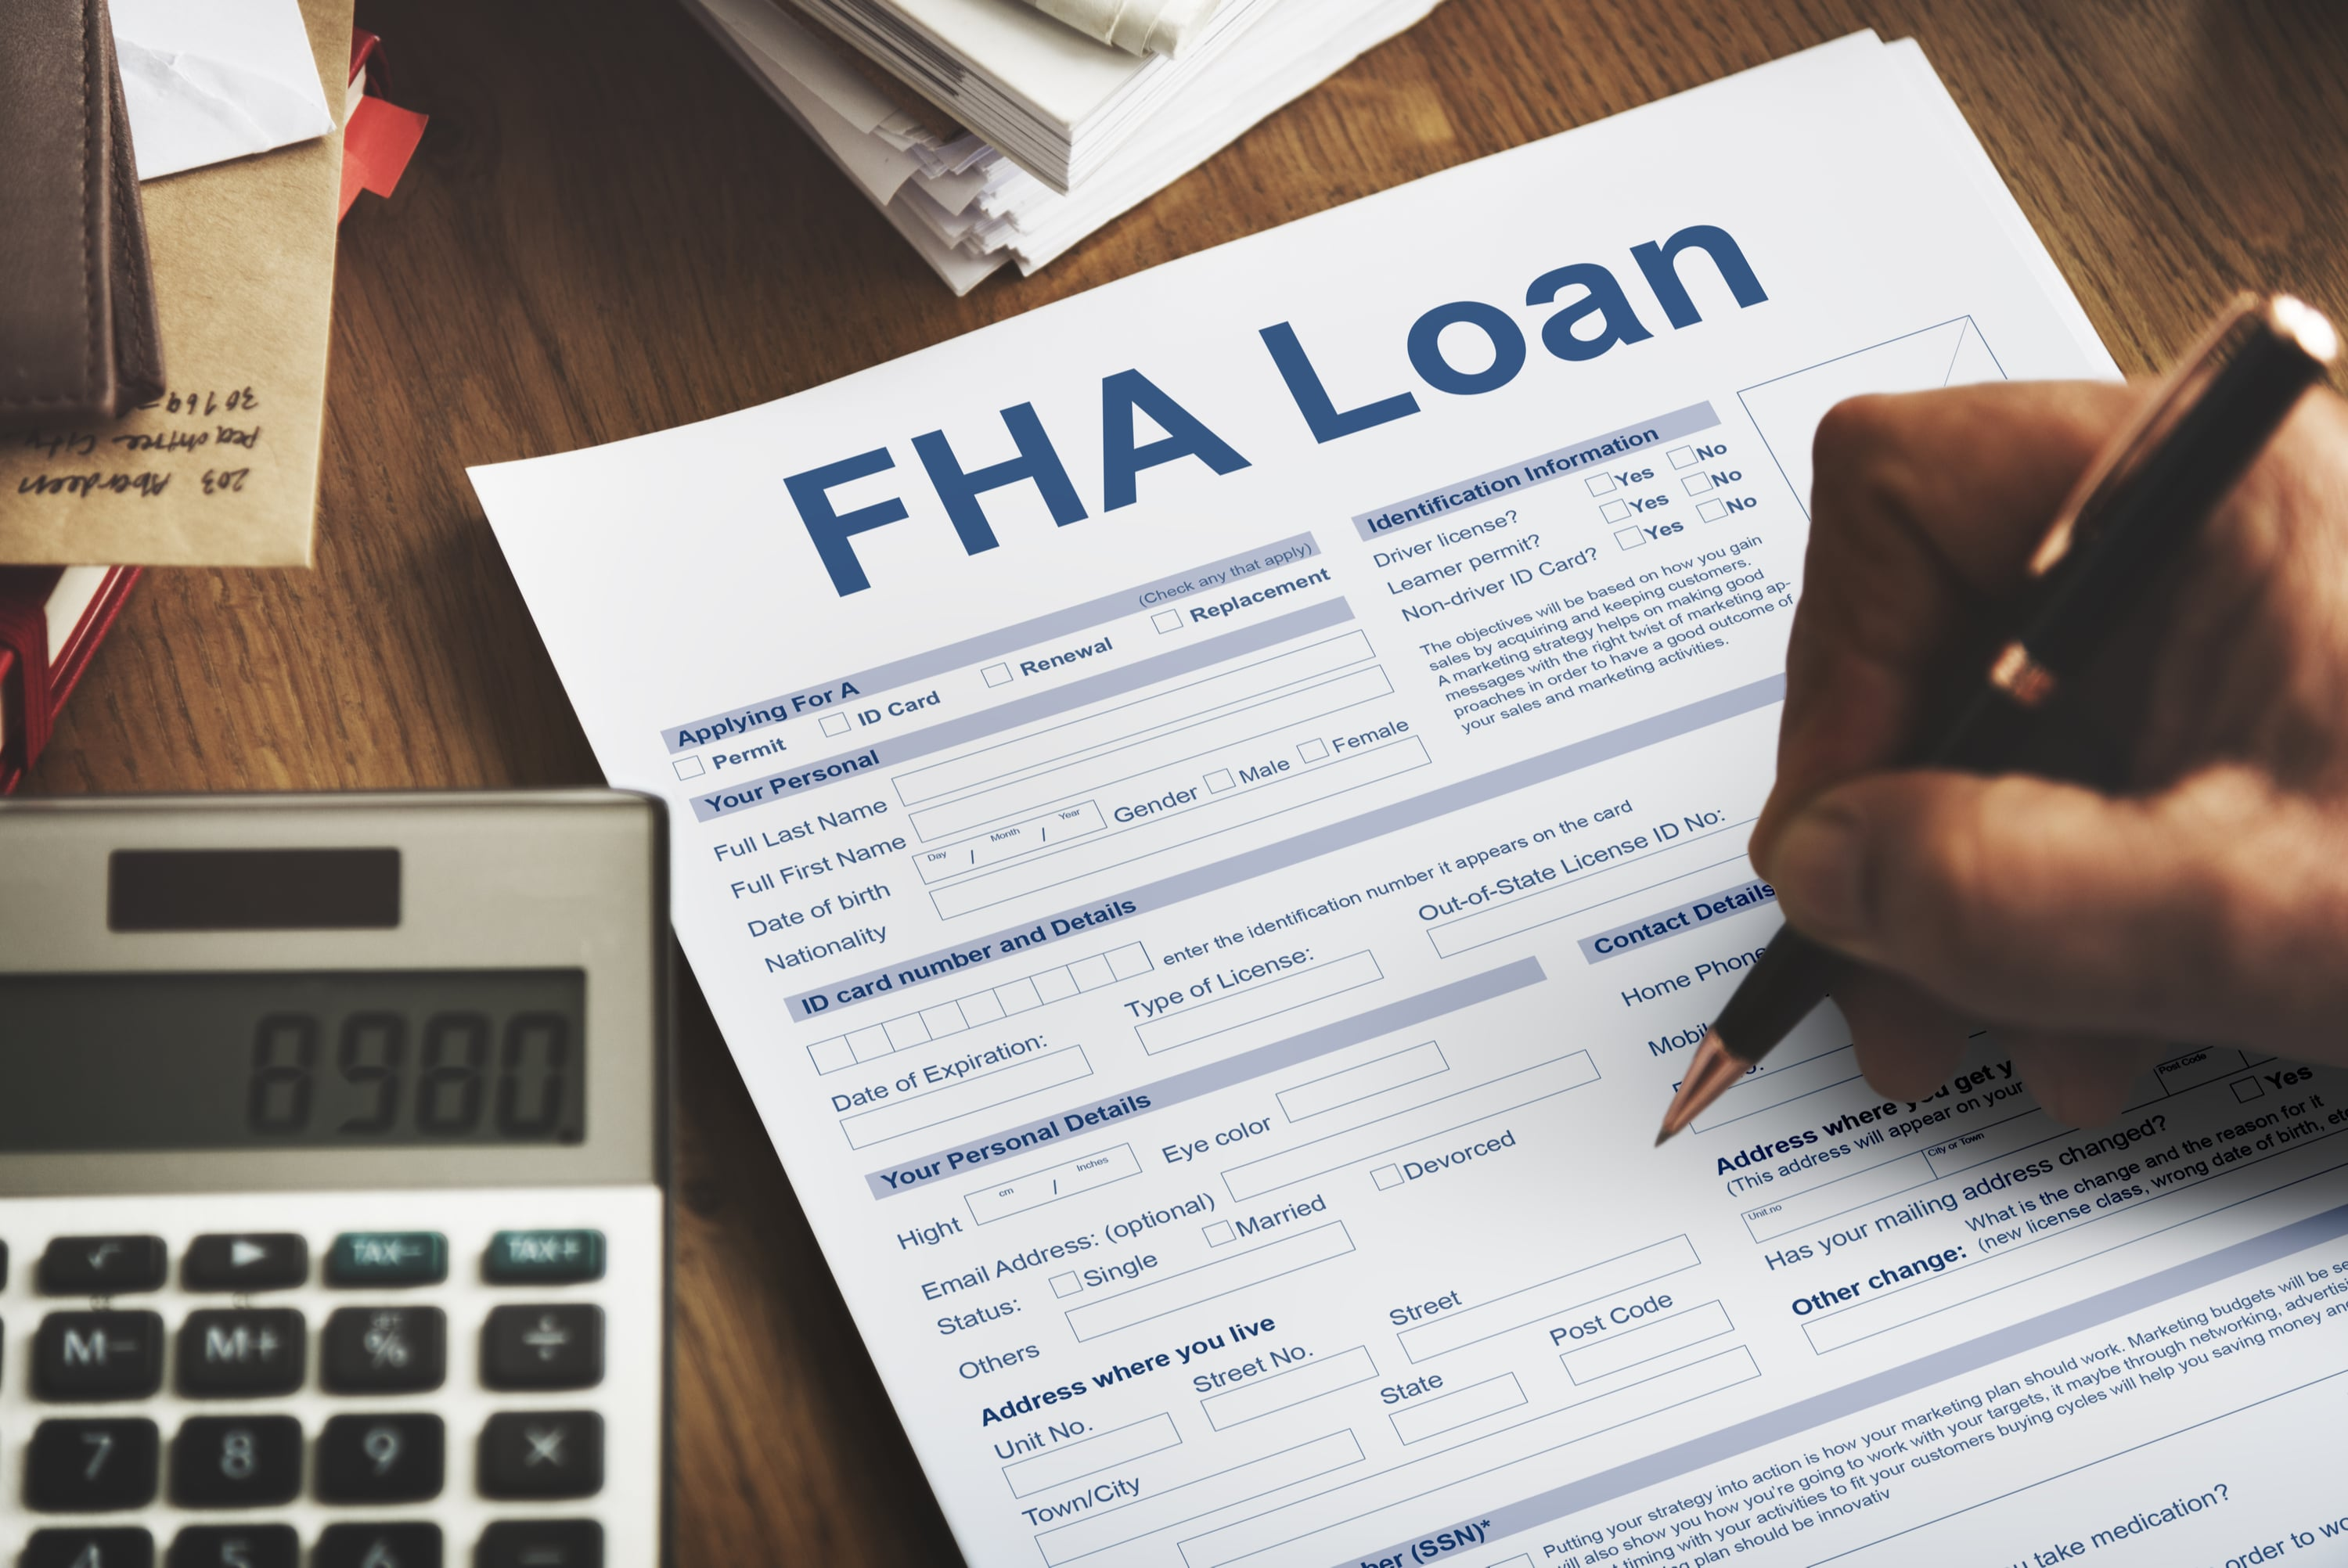 Construction Renovation Loan Calculator What Is An Fha 203k Mortgage Loan Requirements For Home